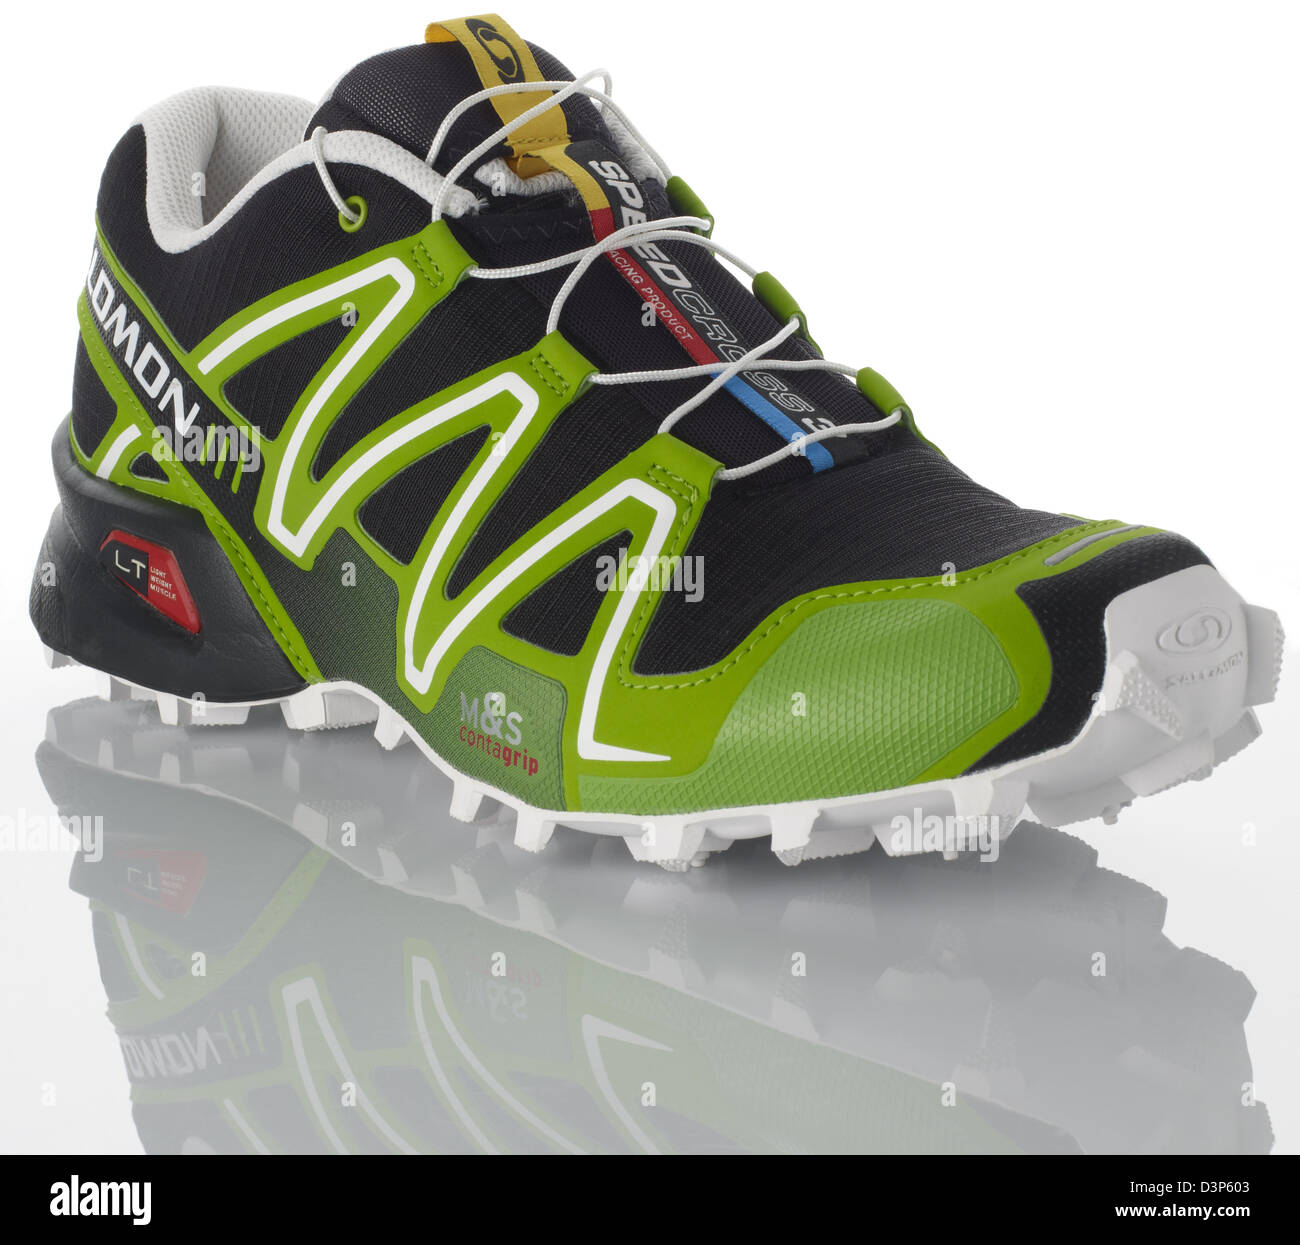 Salomon Speed Cross 3 Running Shoe Imagen De Stock